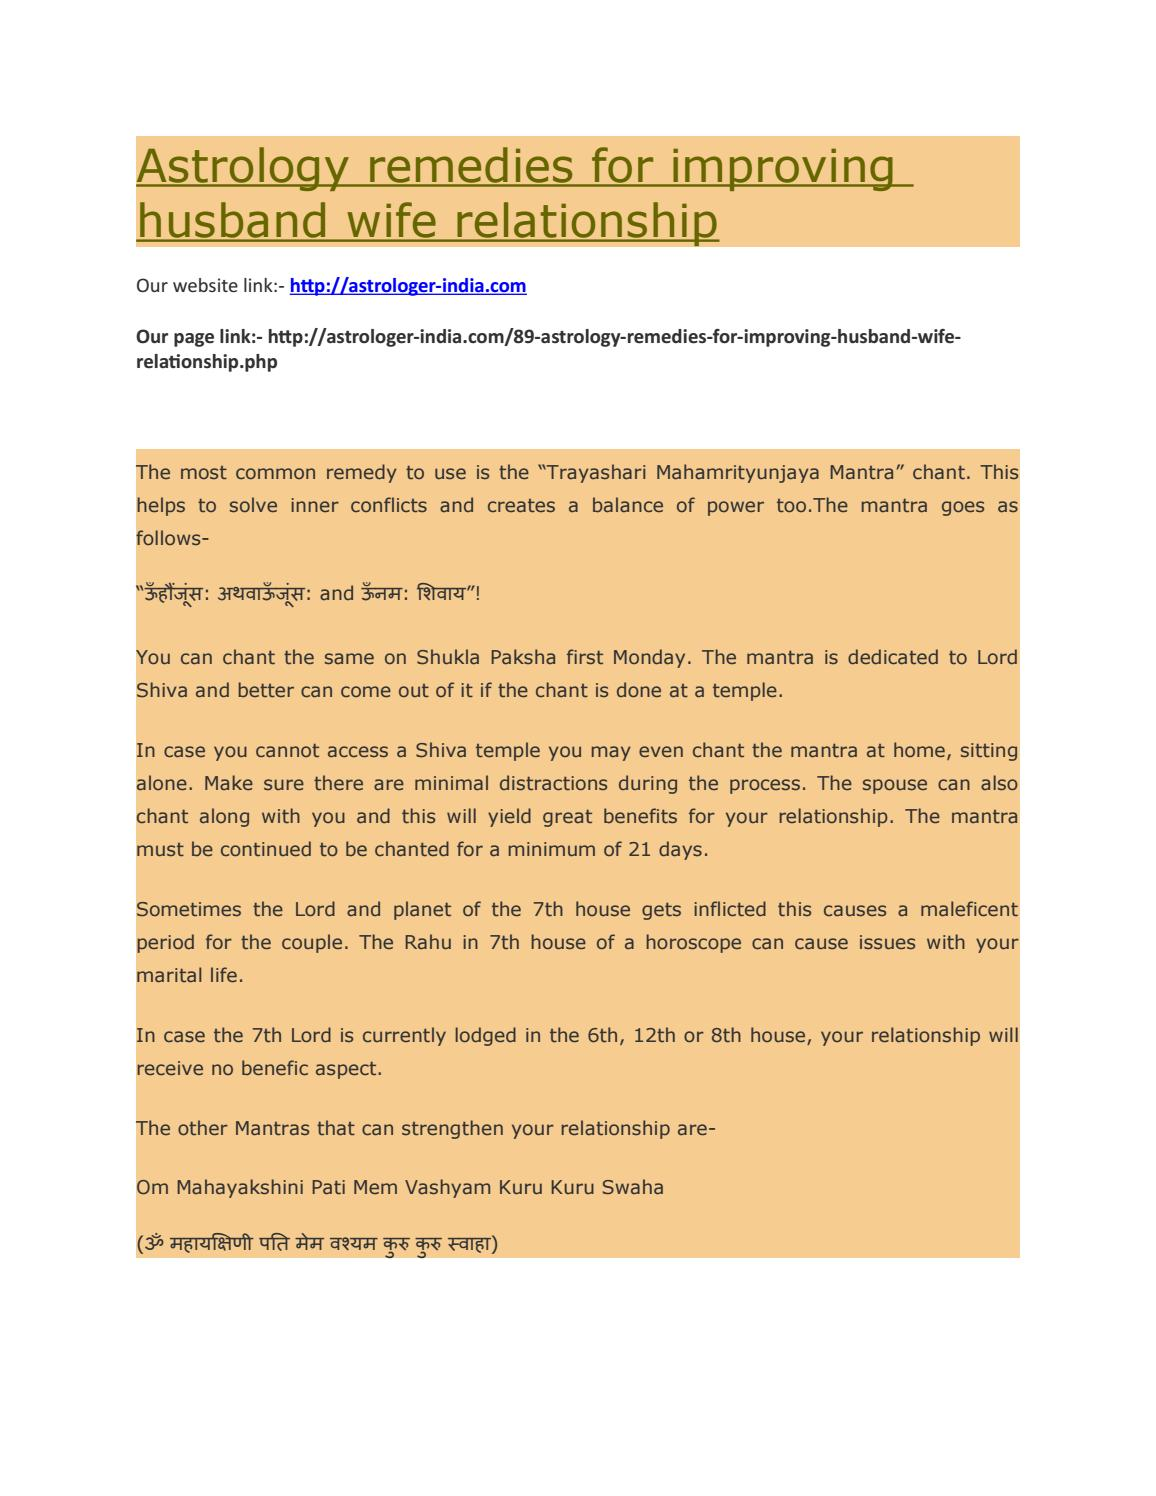 Astrology remedies for improving husband wife relationship by